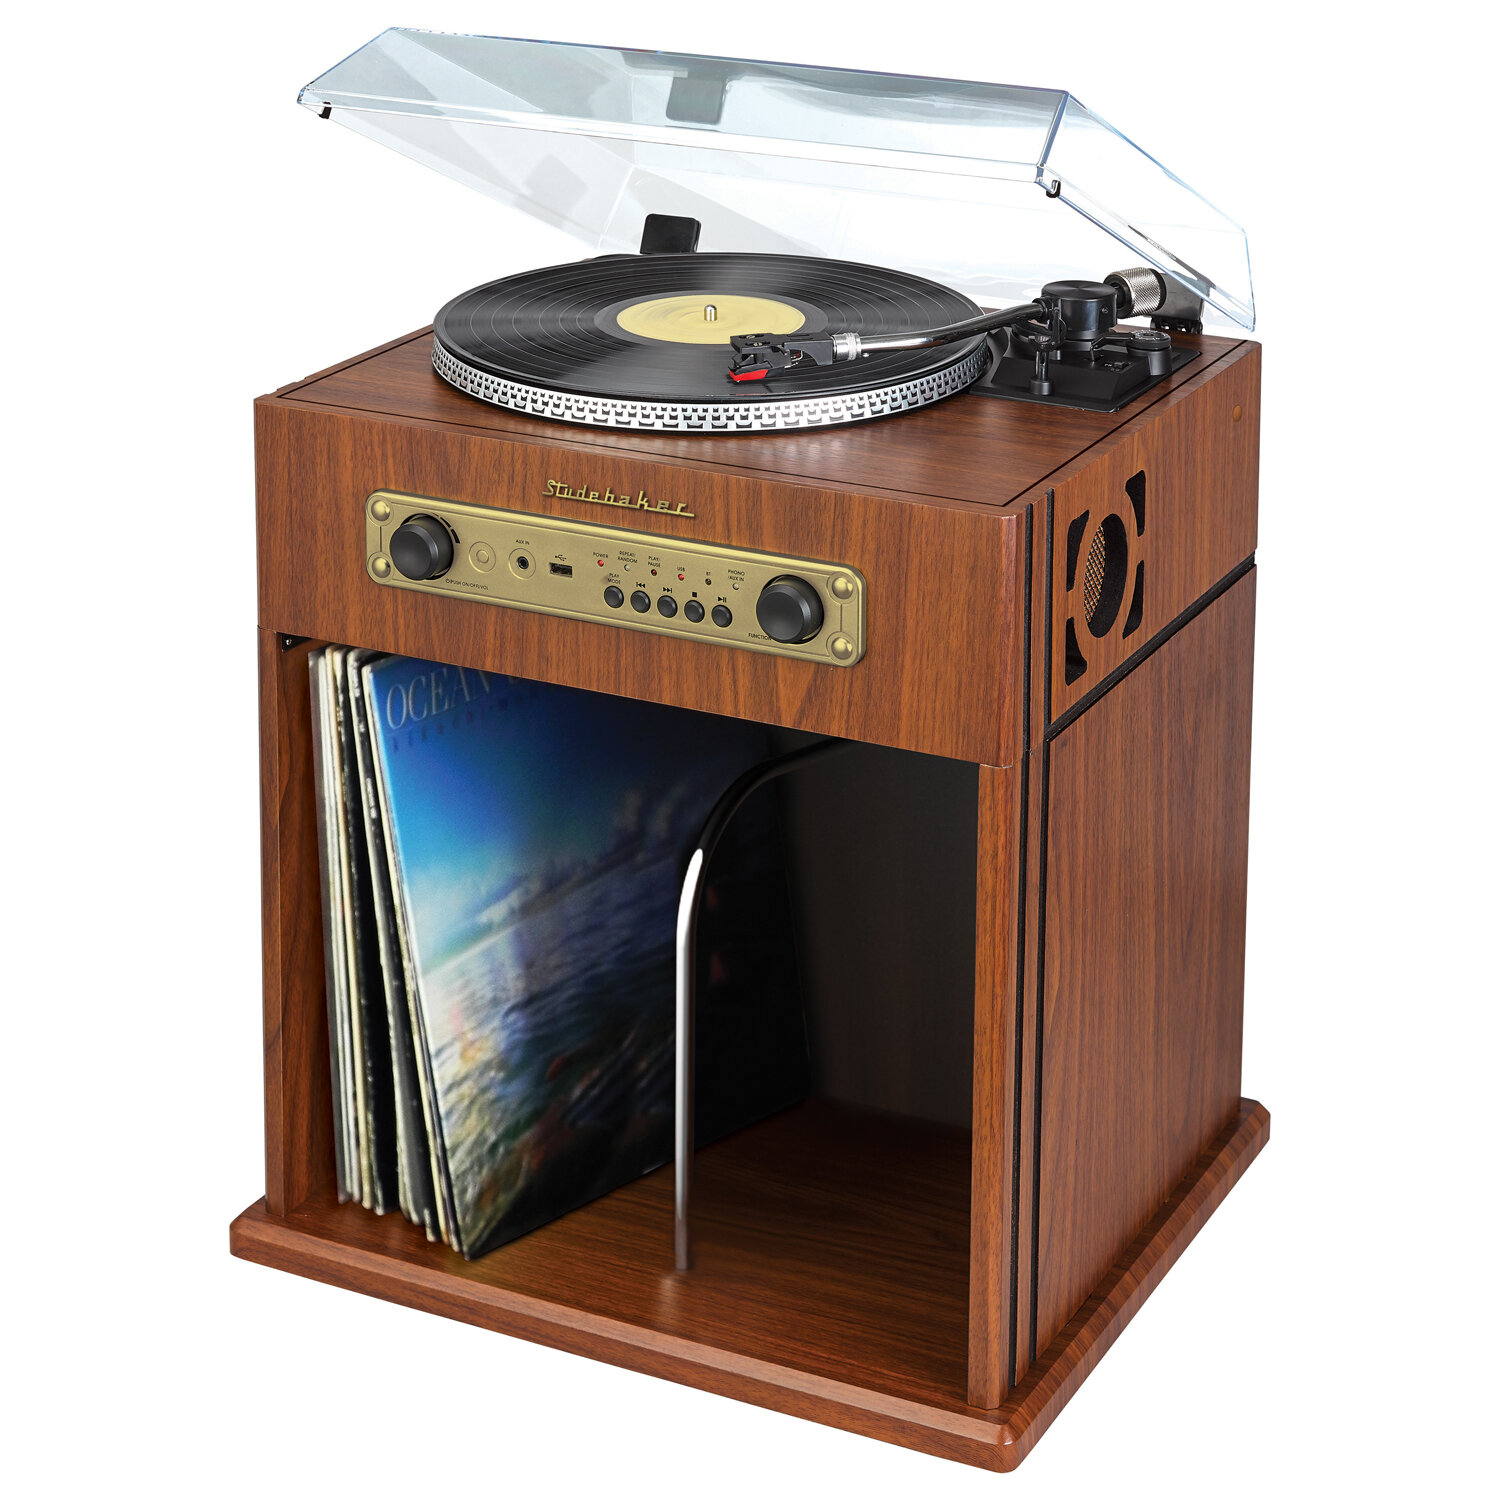 Studebaker Stereo Turntable With Bluetooth Receiver And Record Storage  Cabinet U0026 Reviews | Wayfair